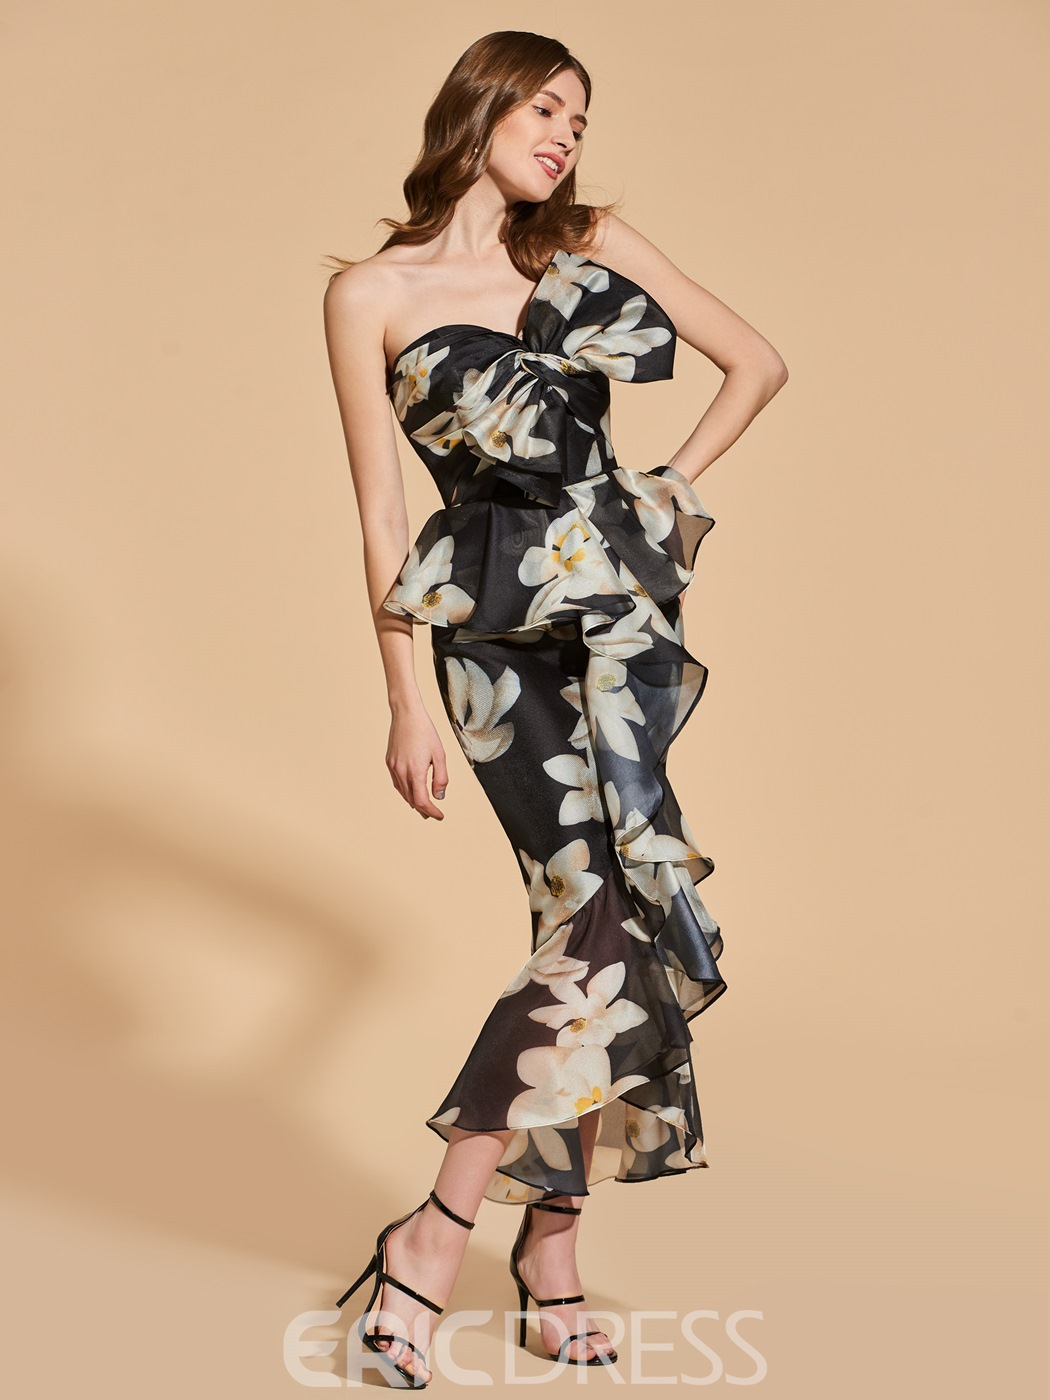 eac90afcab9 Ericdress Sheath Floral Print Mermaid Bodycon Homecoming Dress With  Bowknot(13163063)